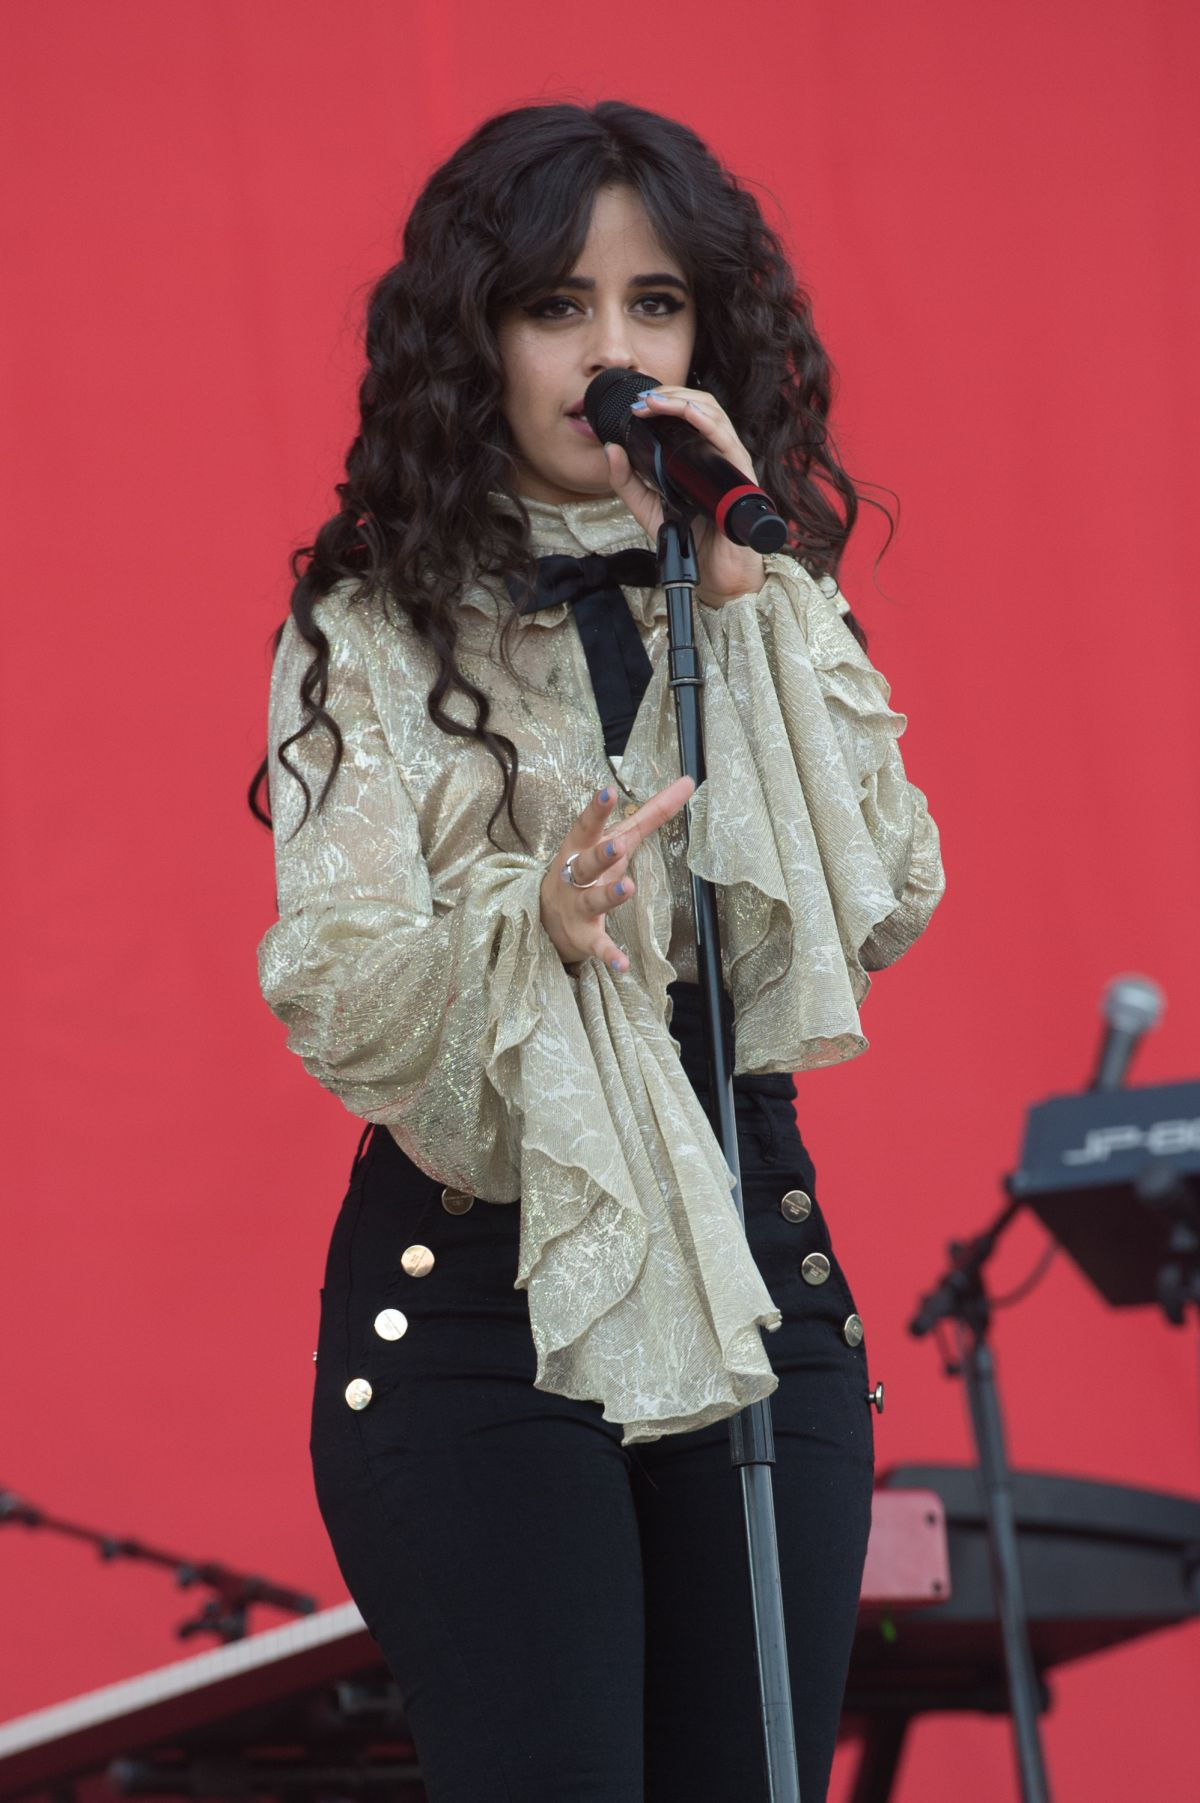 CAMILA CABELLO Performs at 2018 Isle of Wight Festival 06/24